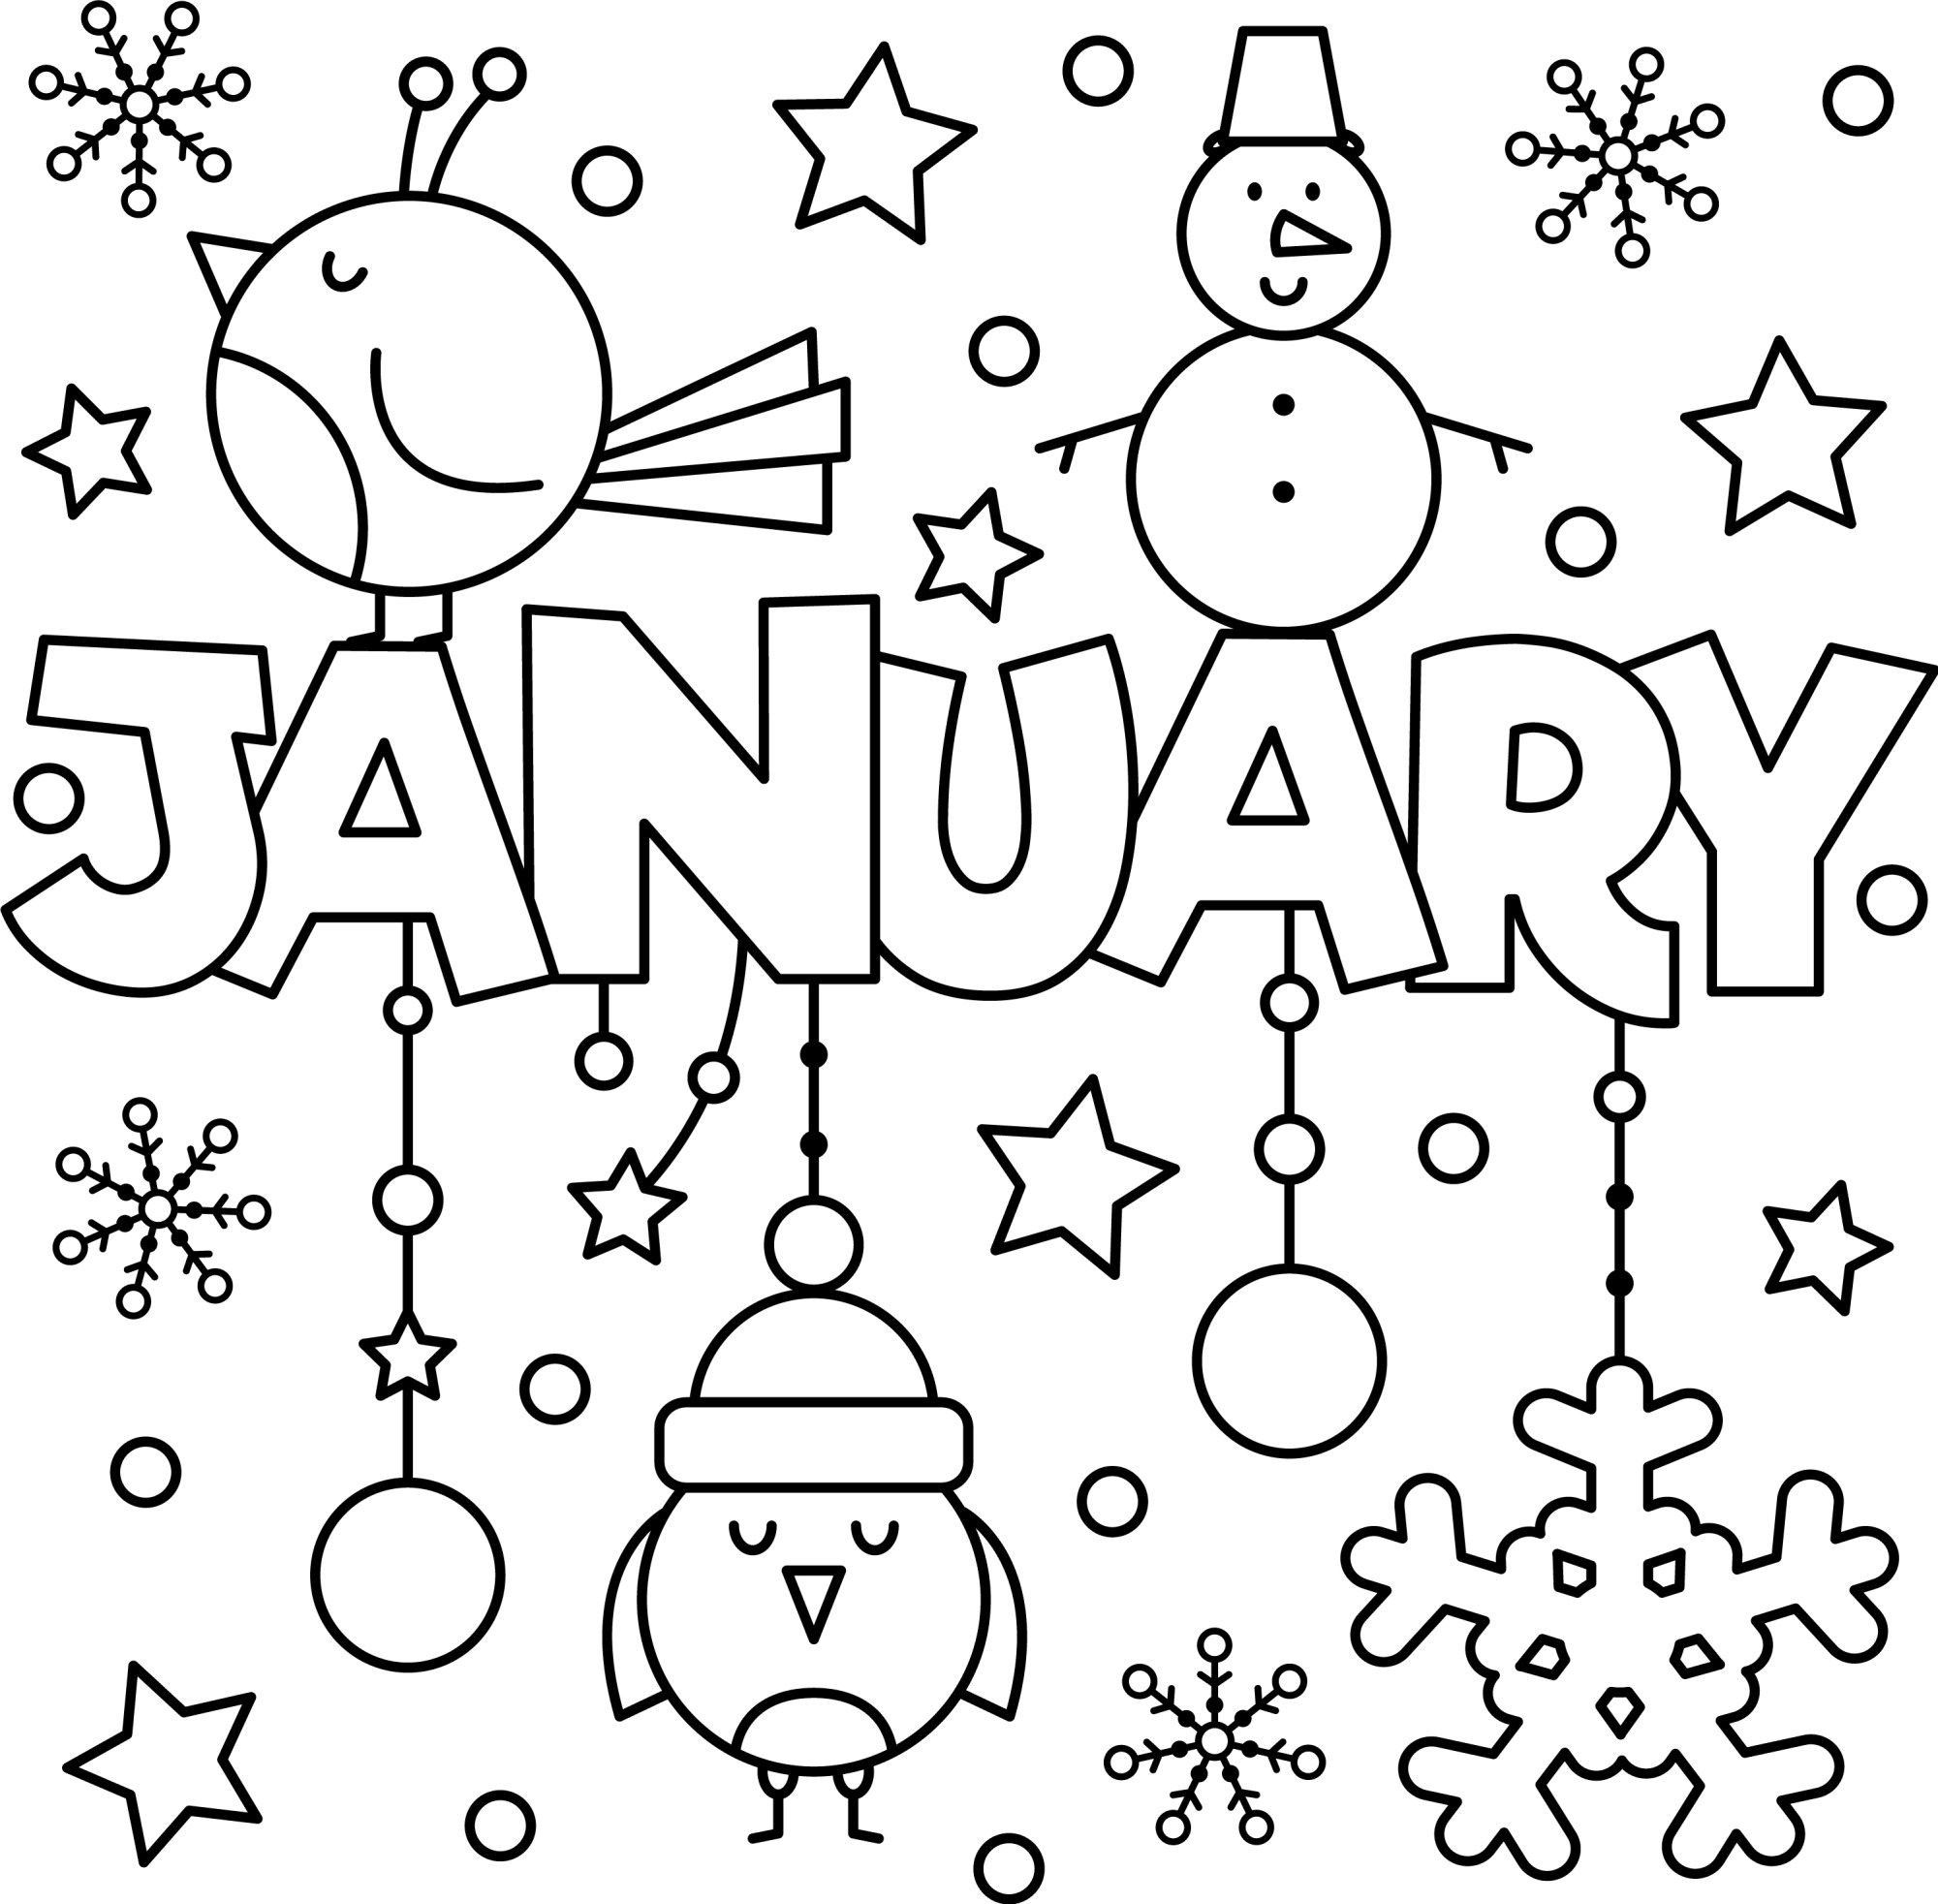 4 Simple But Challenging Coloring Pages For Toddlers To Print Happy New Year January C New Year Coloring Pages Preschool Coloring Pages Coloring Pages For Kids